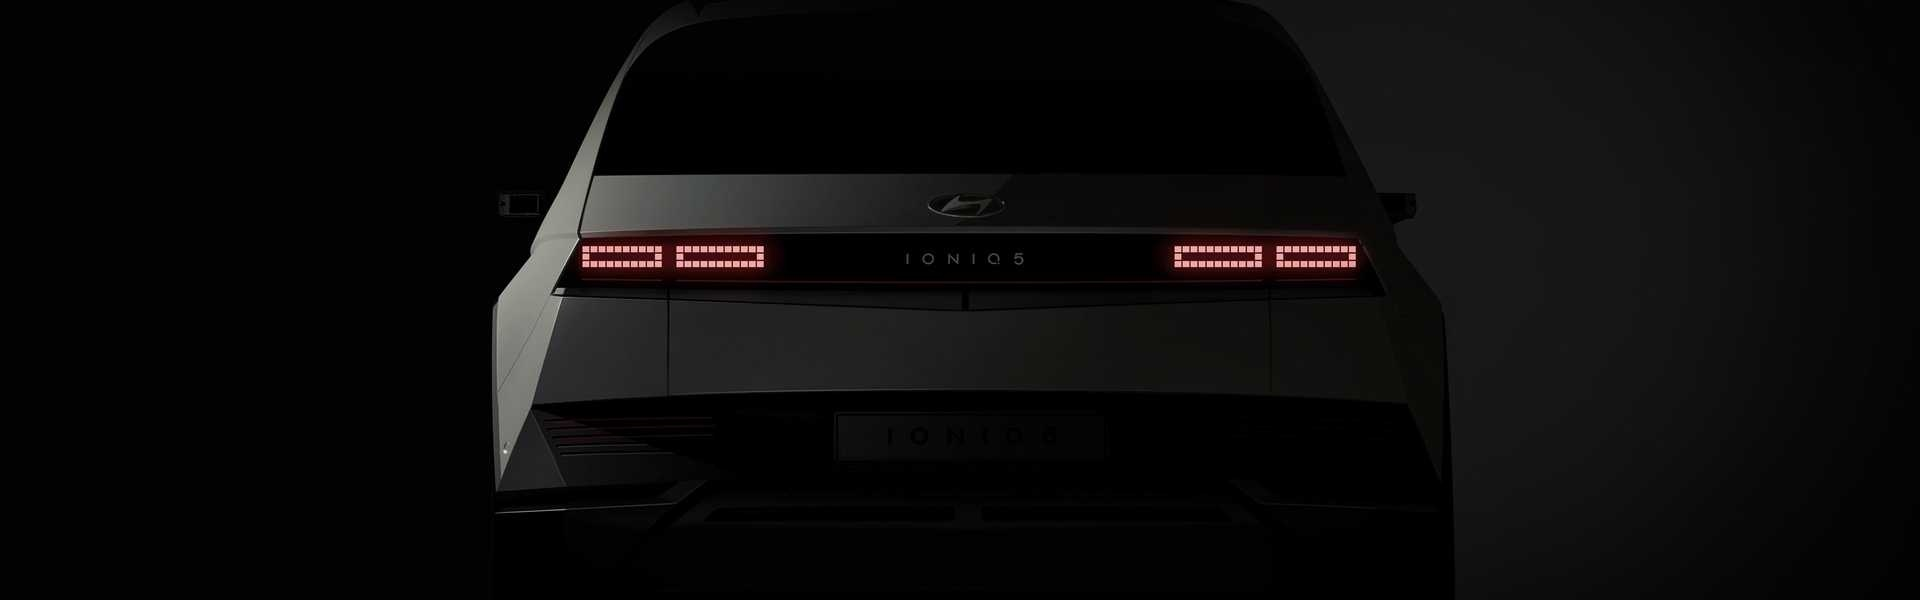 2022-hyundai-ioniq-5-teaser-rear-end.jpg